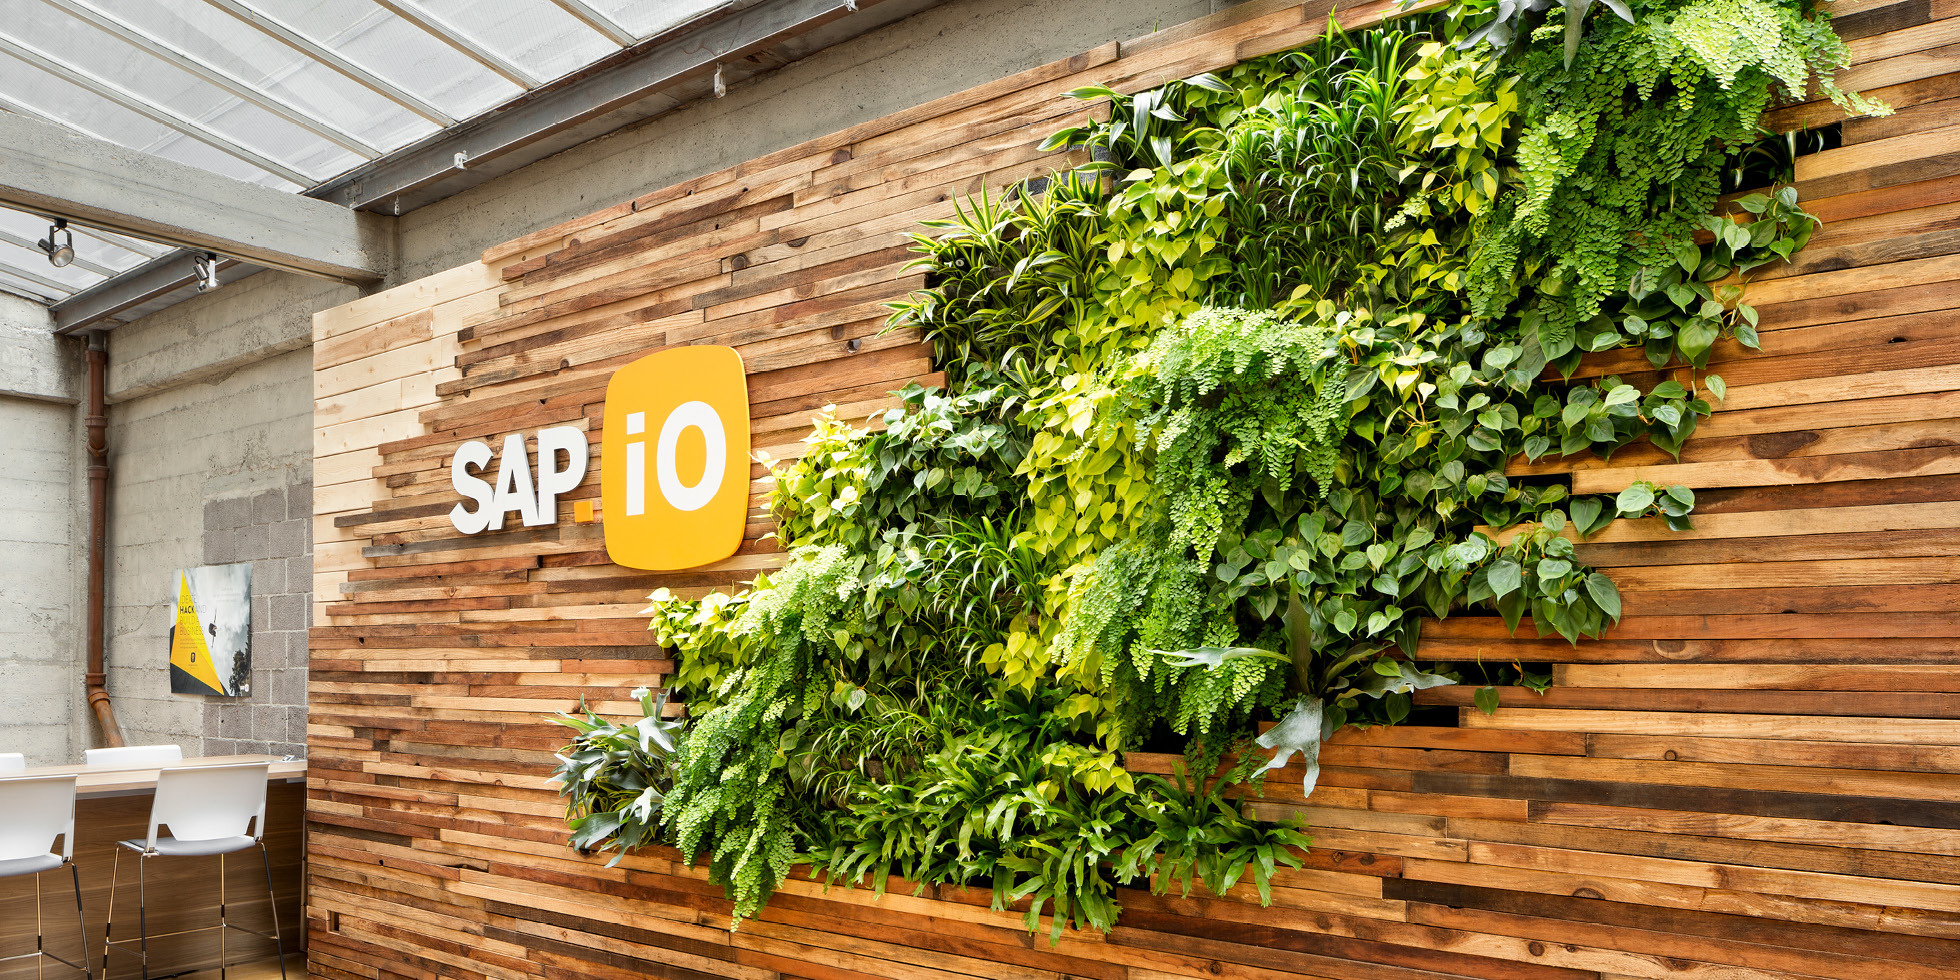 SAP.iO Living Wall by Habitat Horticulture - View 3